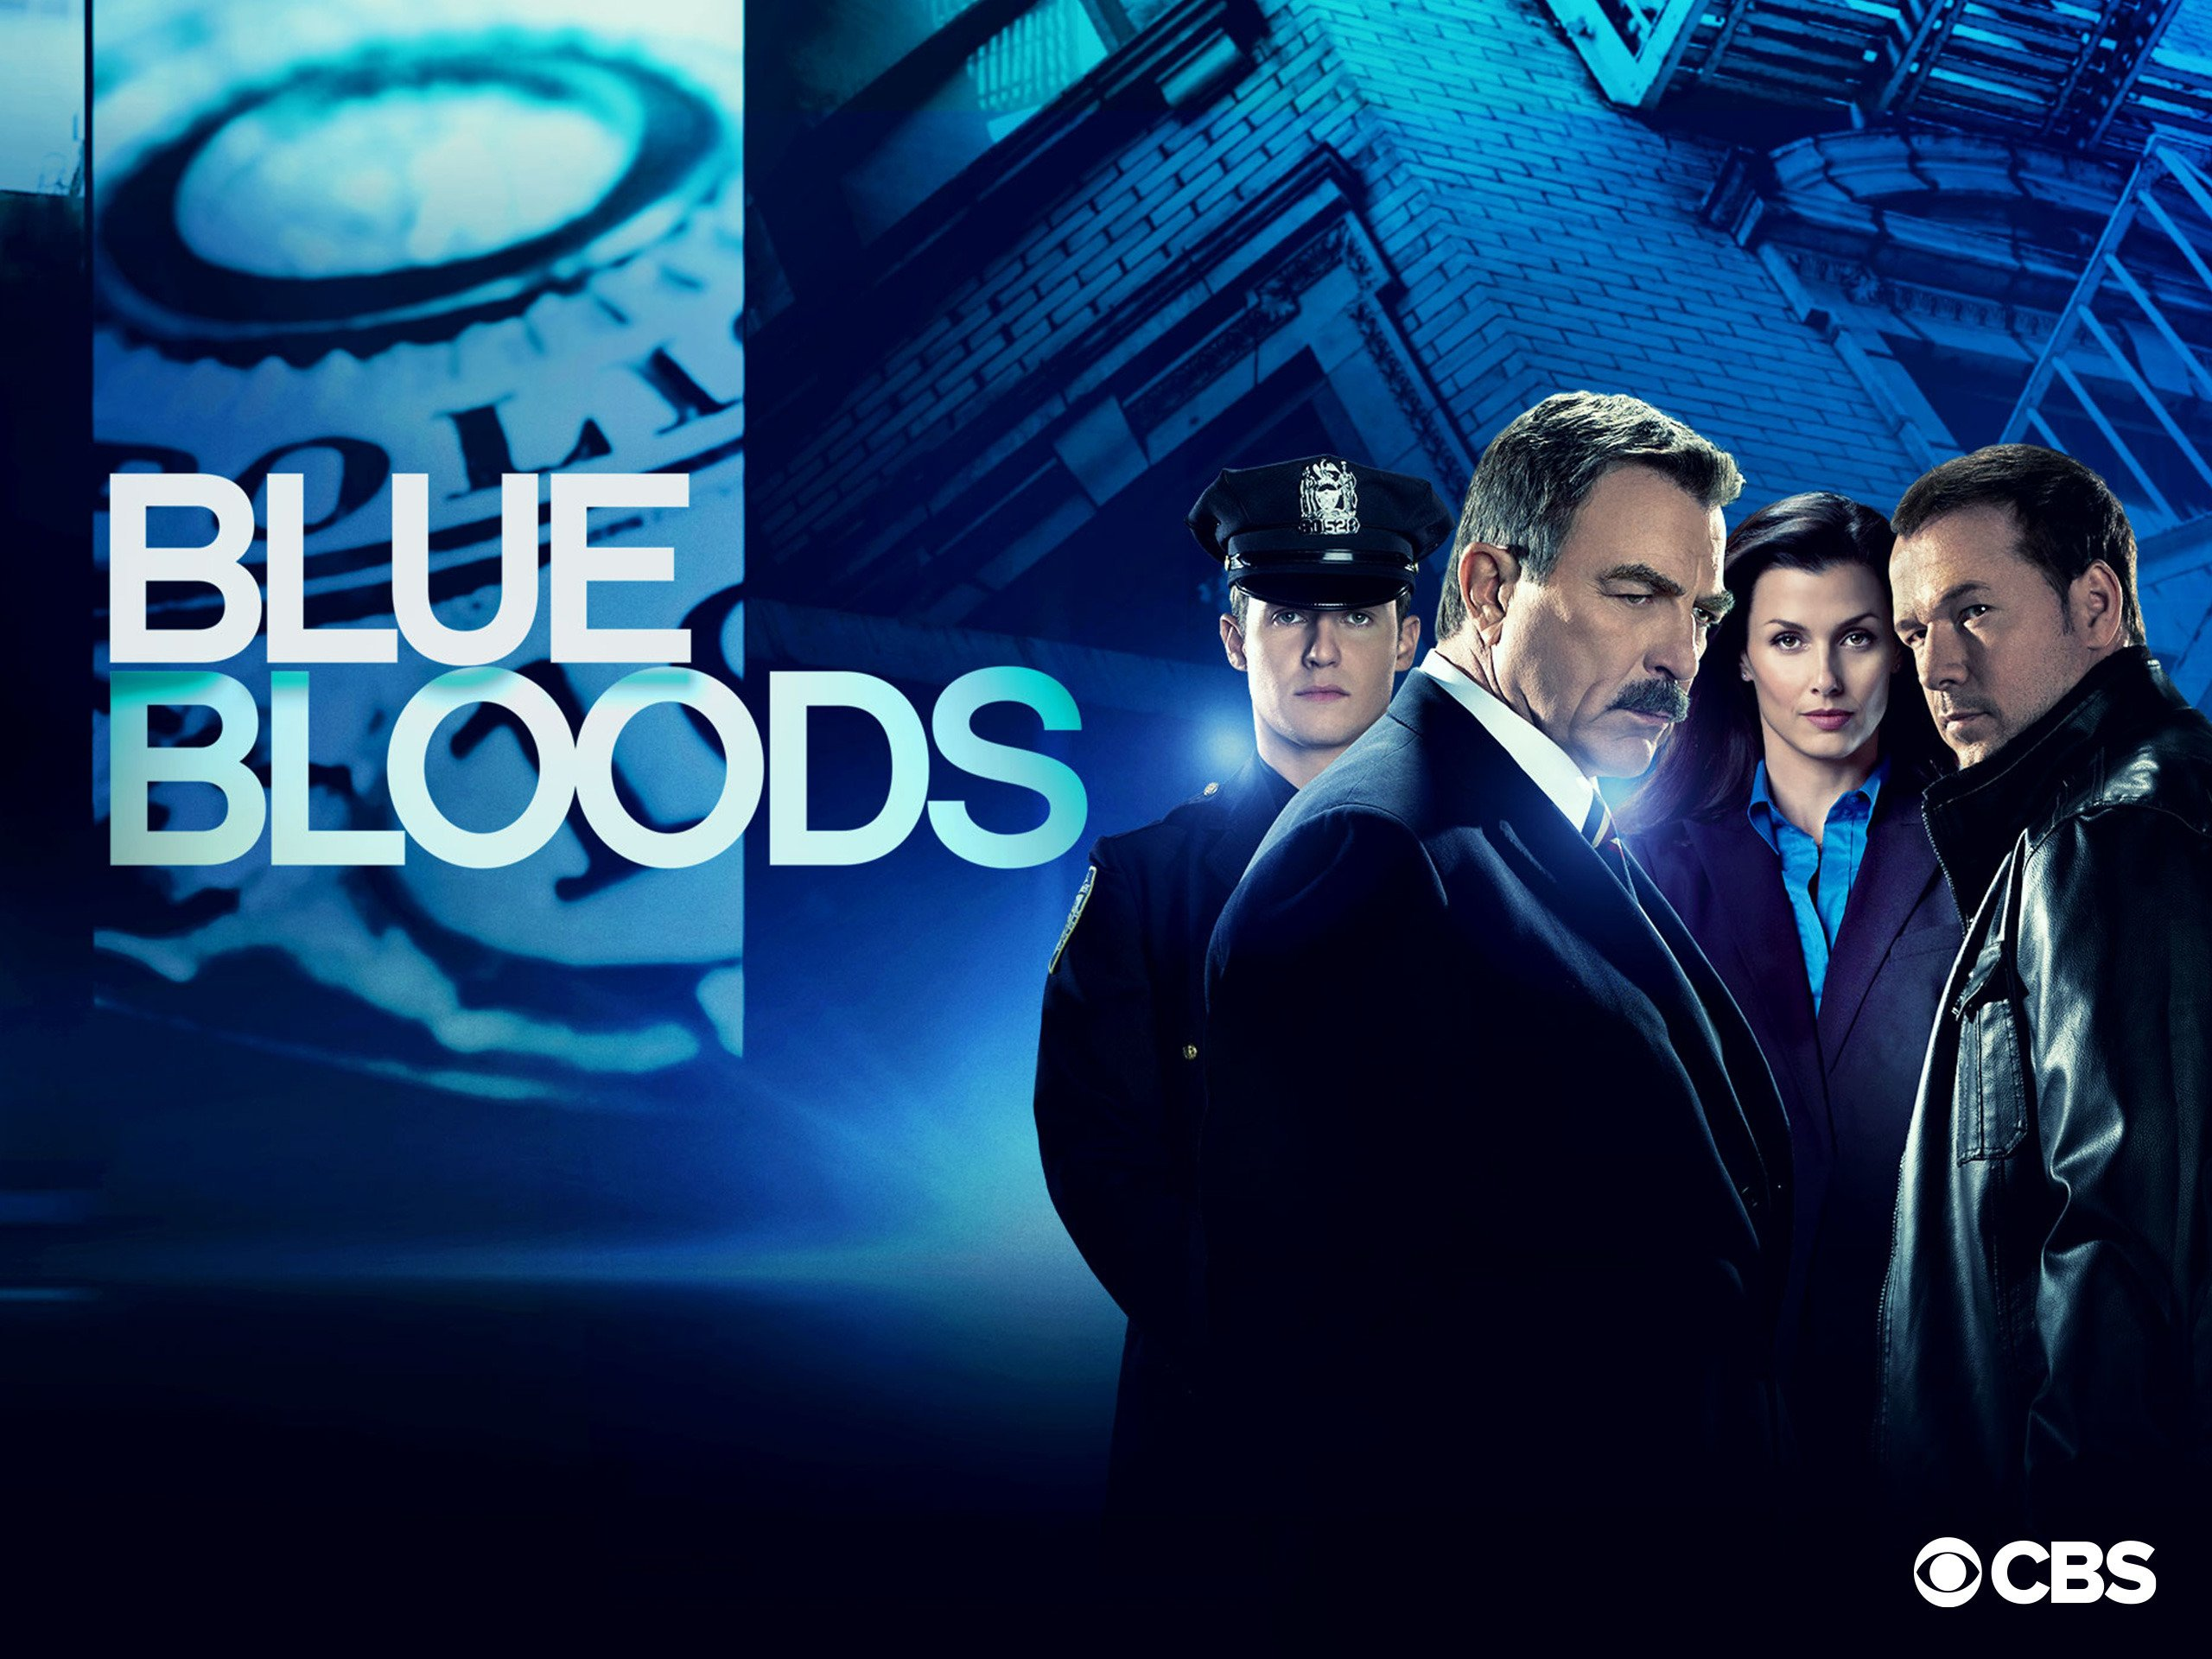 Blue bloods (s09e01): playing with fire summary season 9 episode.